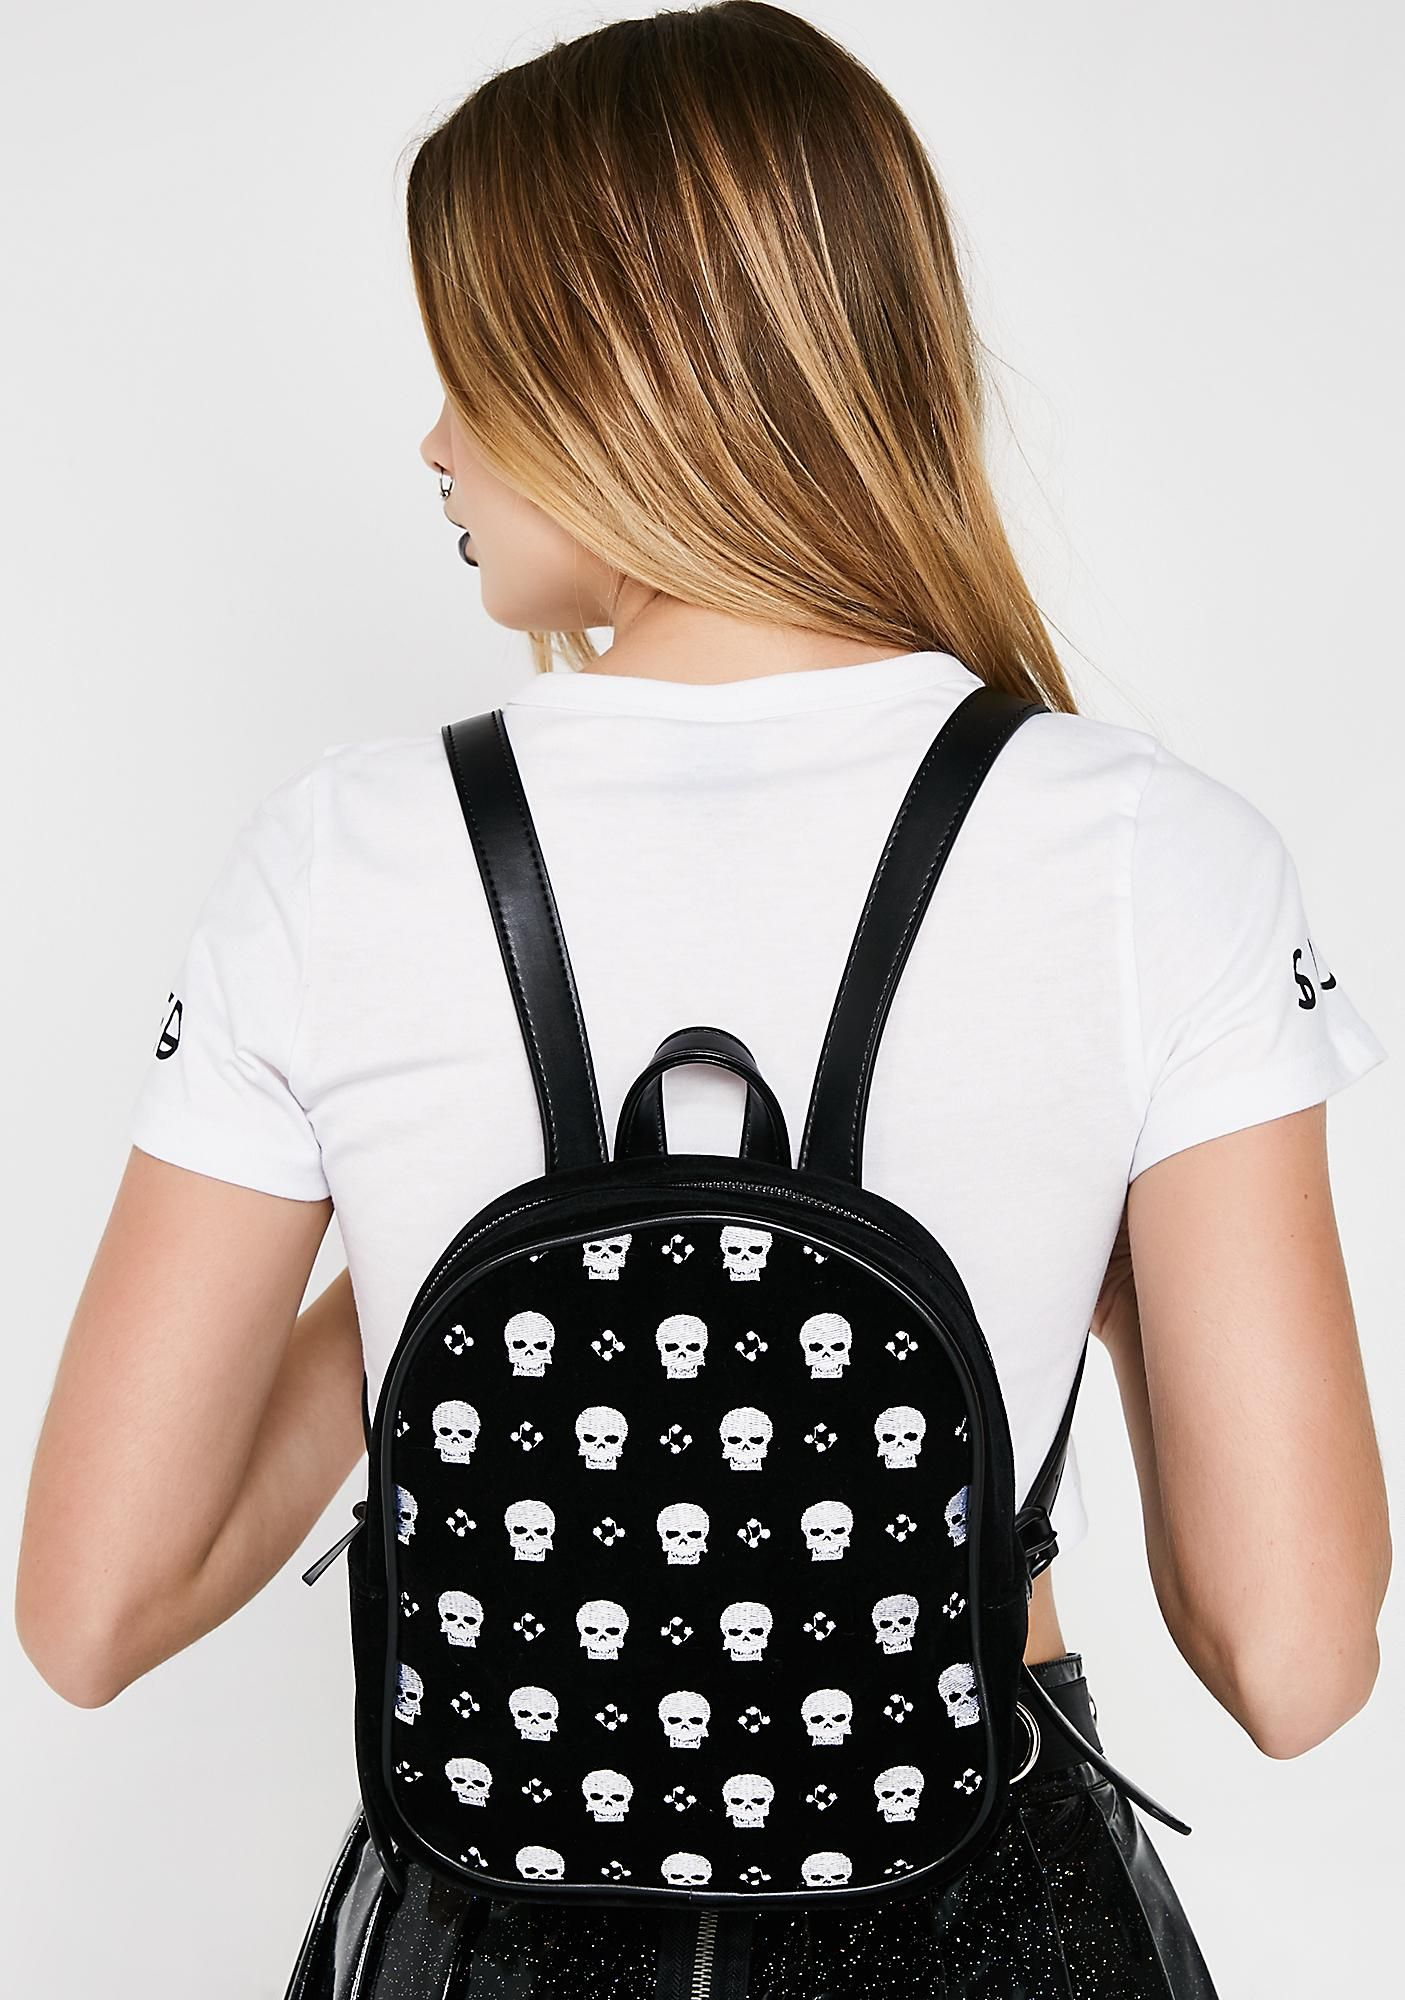 Current Mood Repeat Repenter Mini Backpack   dollskill   Pinterest ... 4cebff2d60